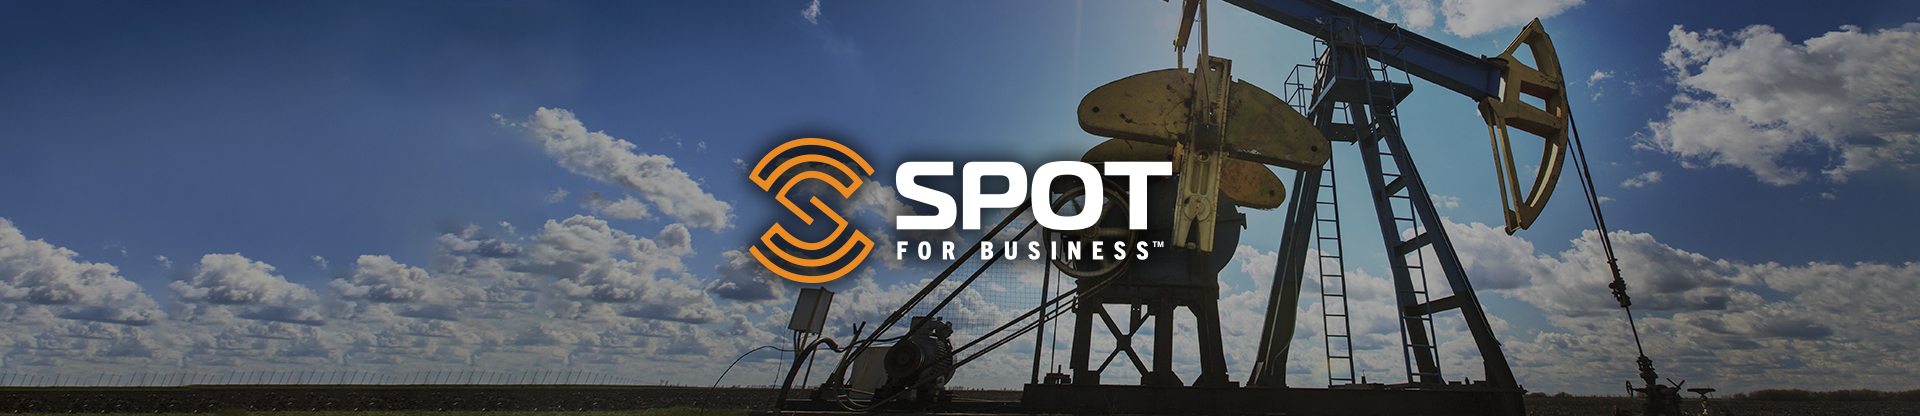 Spot for Business